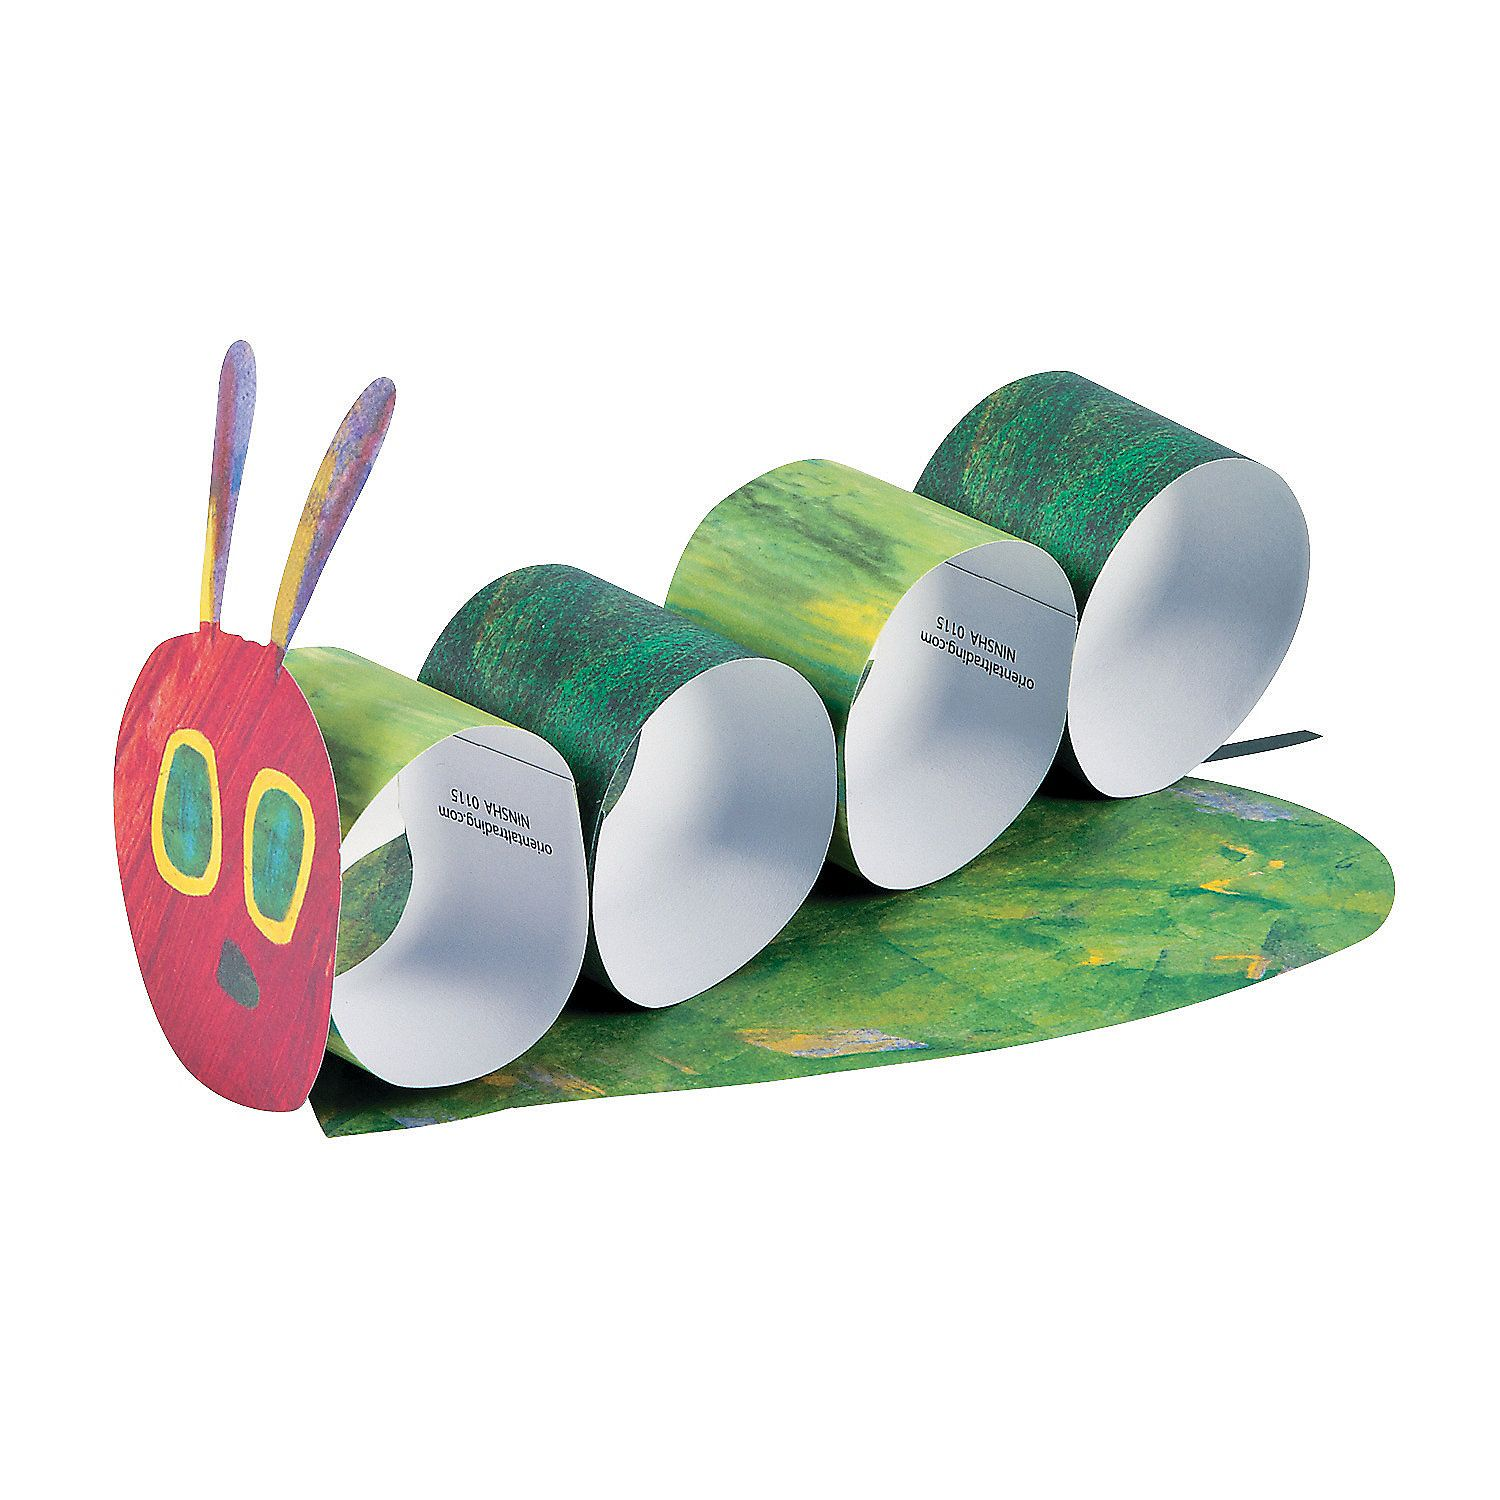 Eric+Carle's+The+Very+Hungry+Caterpillar™+Craft+Kit